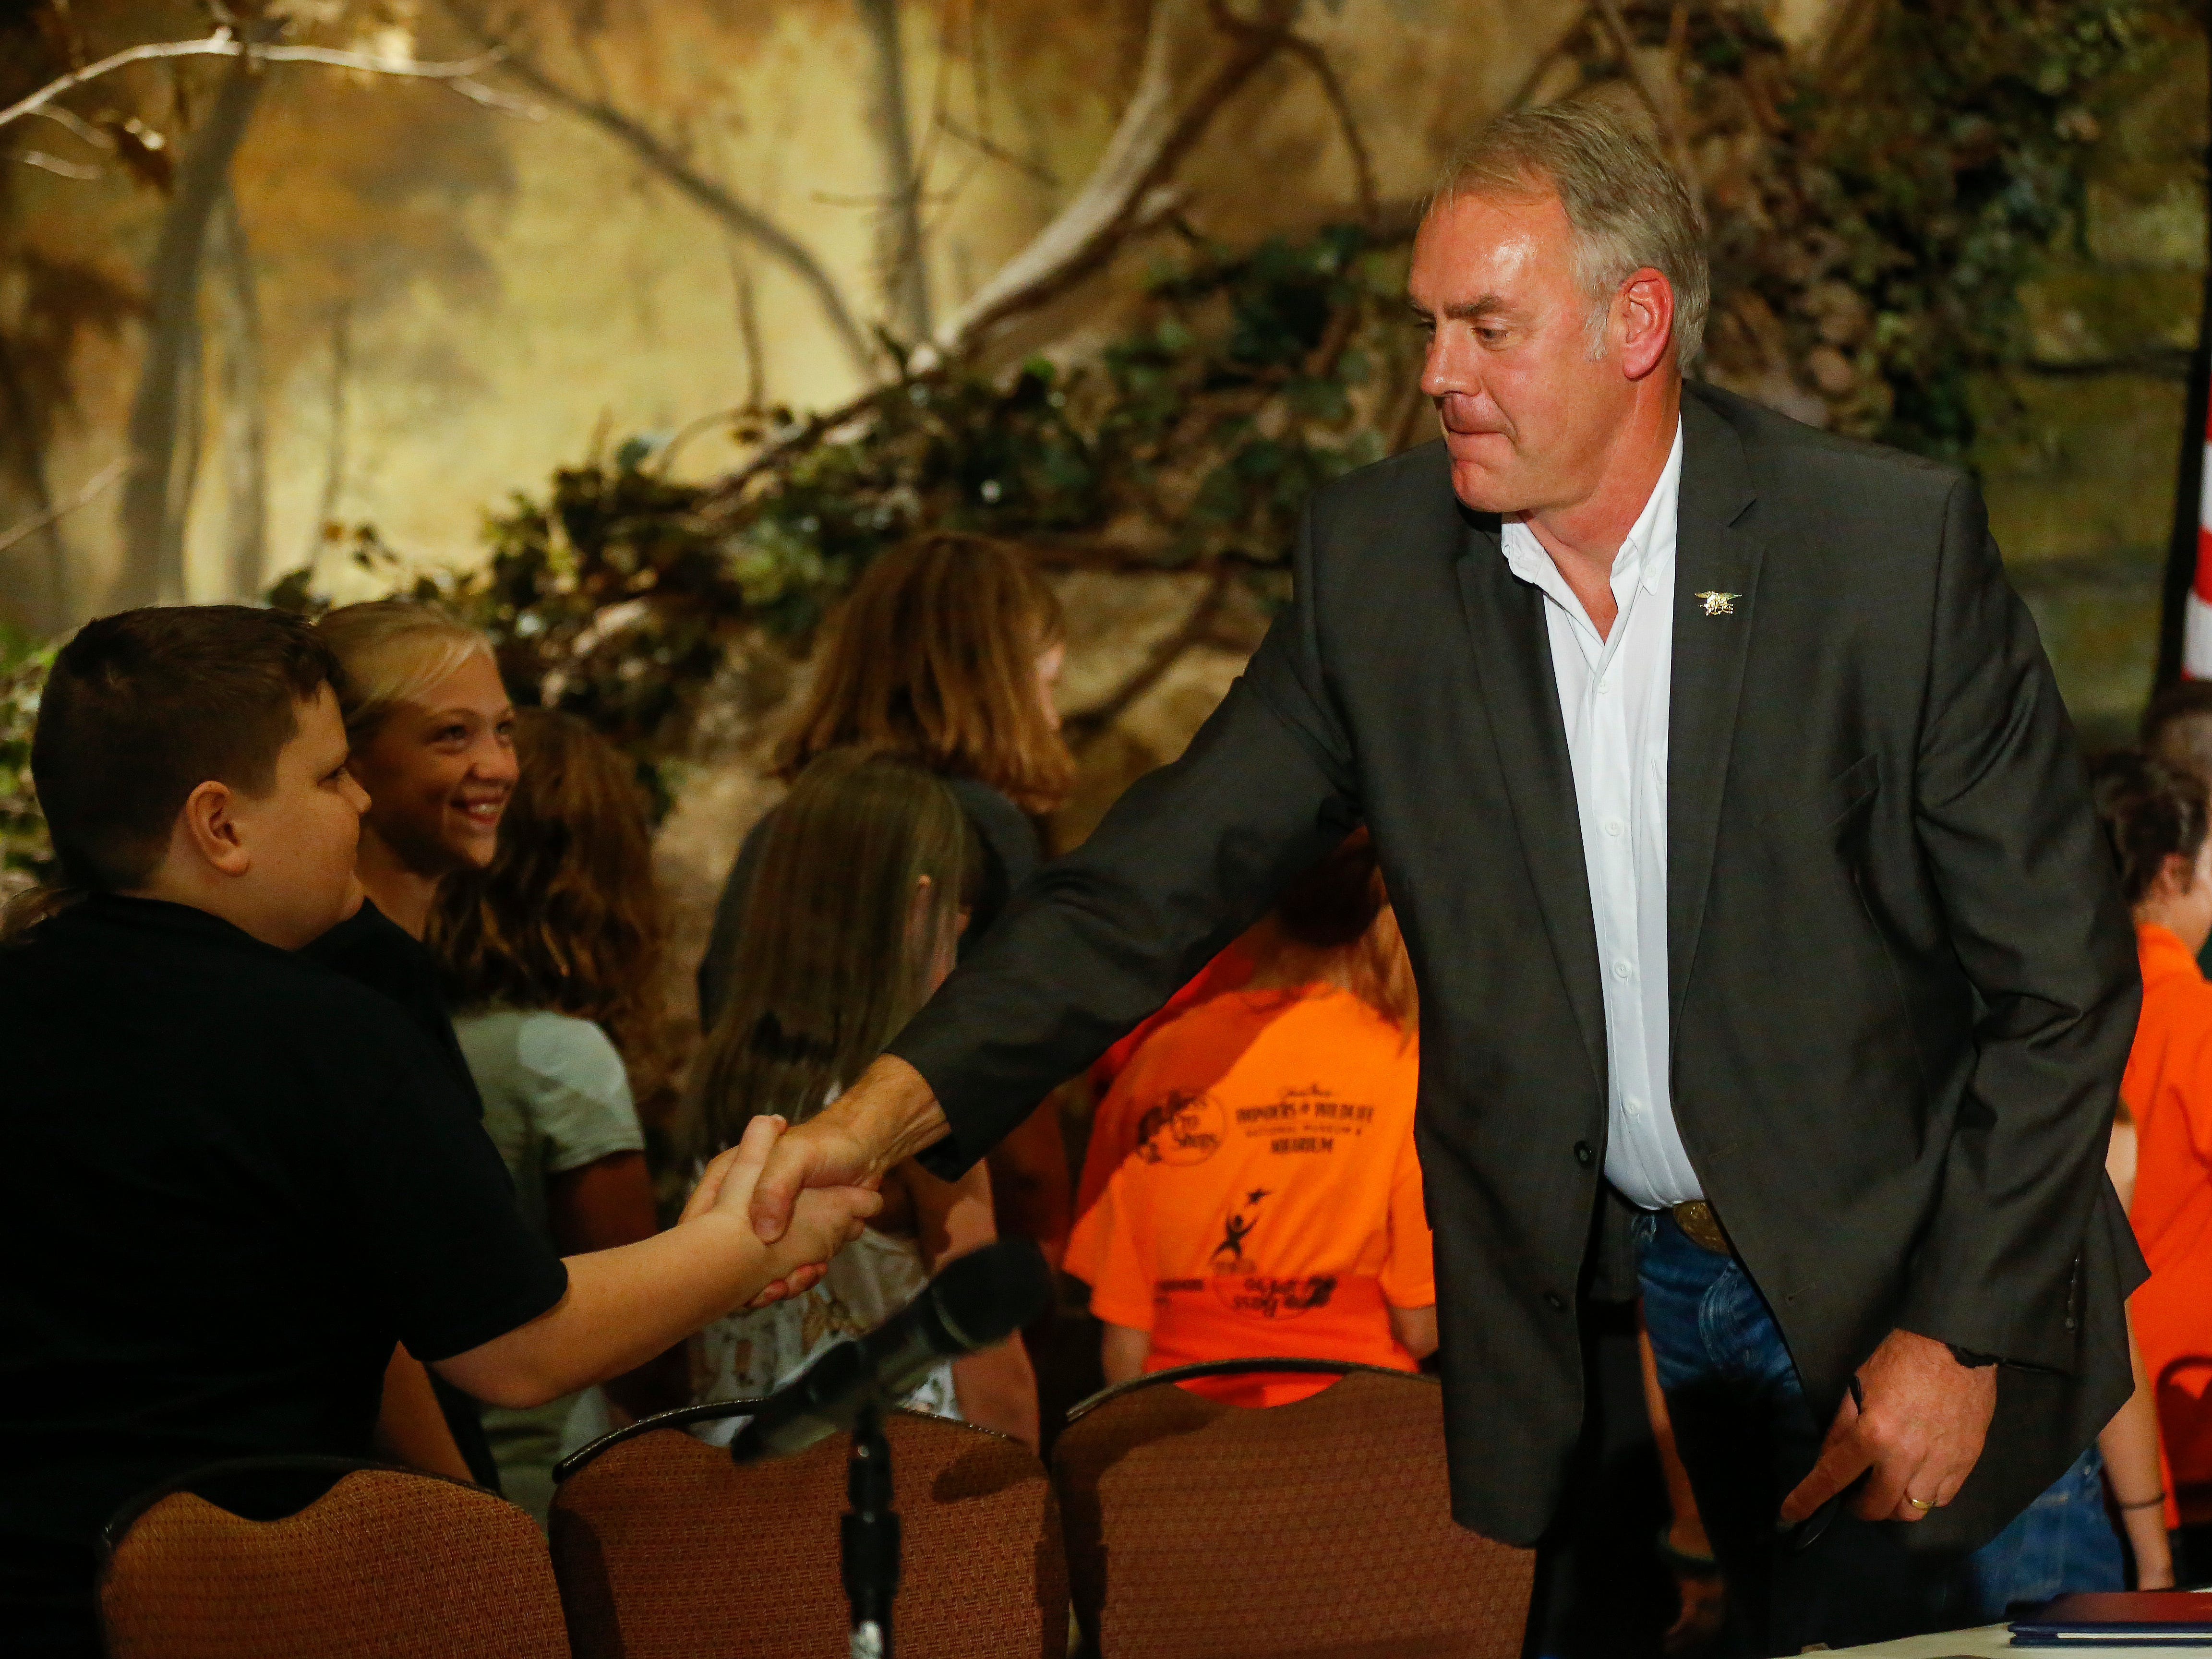 U.S. Secretary of the Interior Ryan Zinke shakes hands with students from the WOLF School after signing a proclamation during the 11th Annual Private Lands Partners Day at the White River Conference Center on Thursday, Oct. 4, 2018.